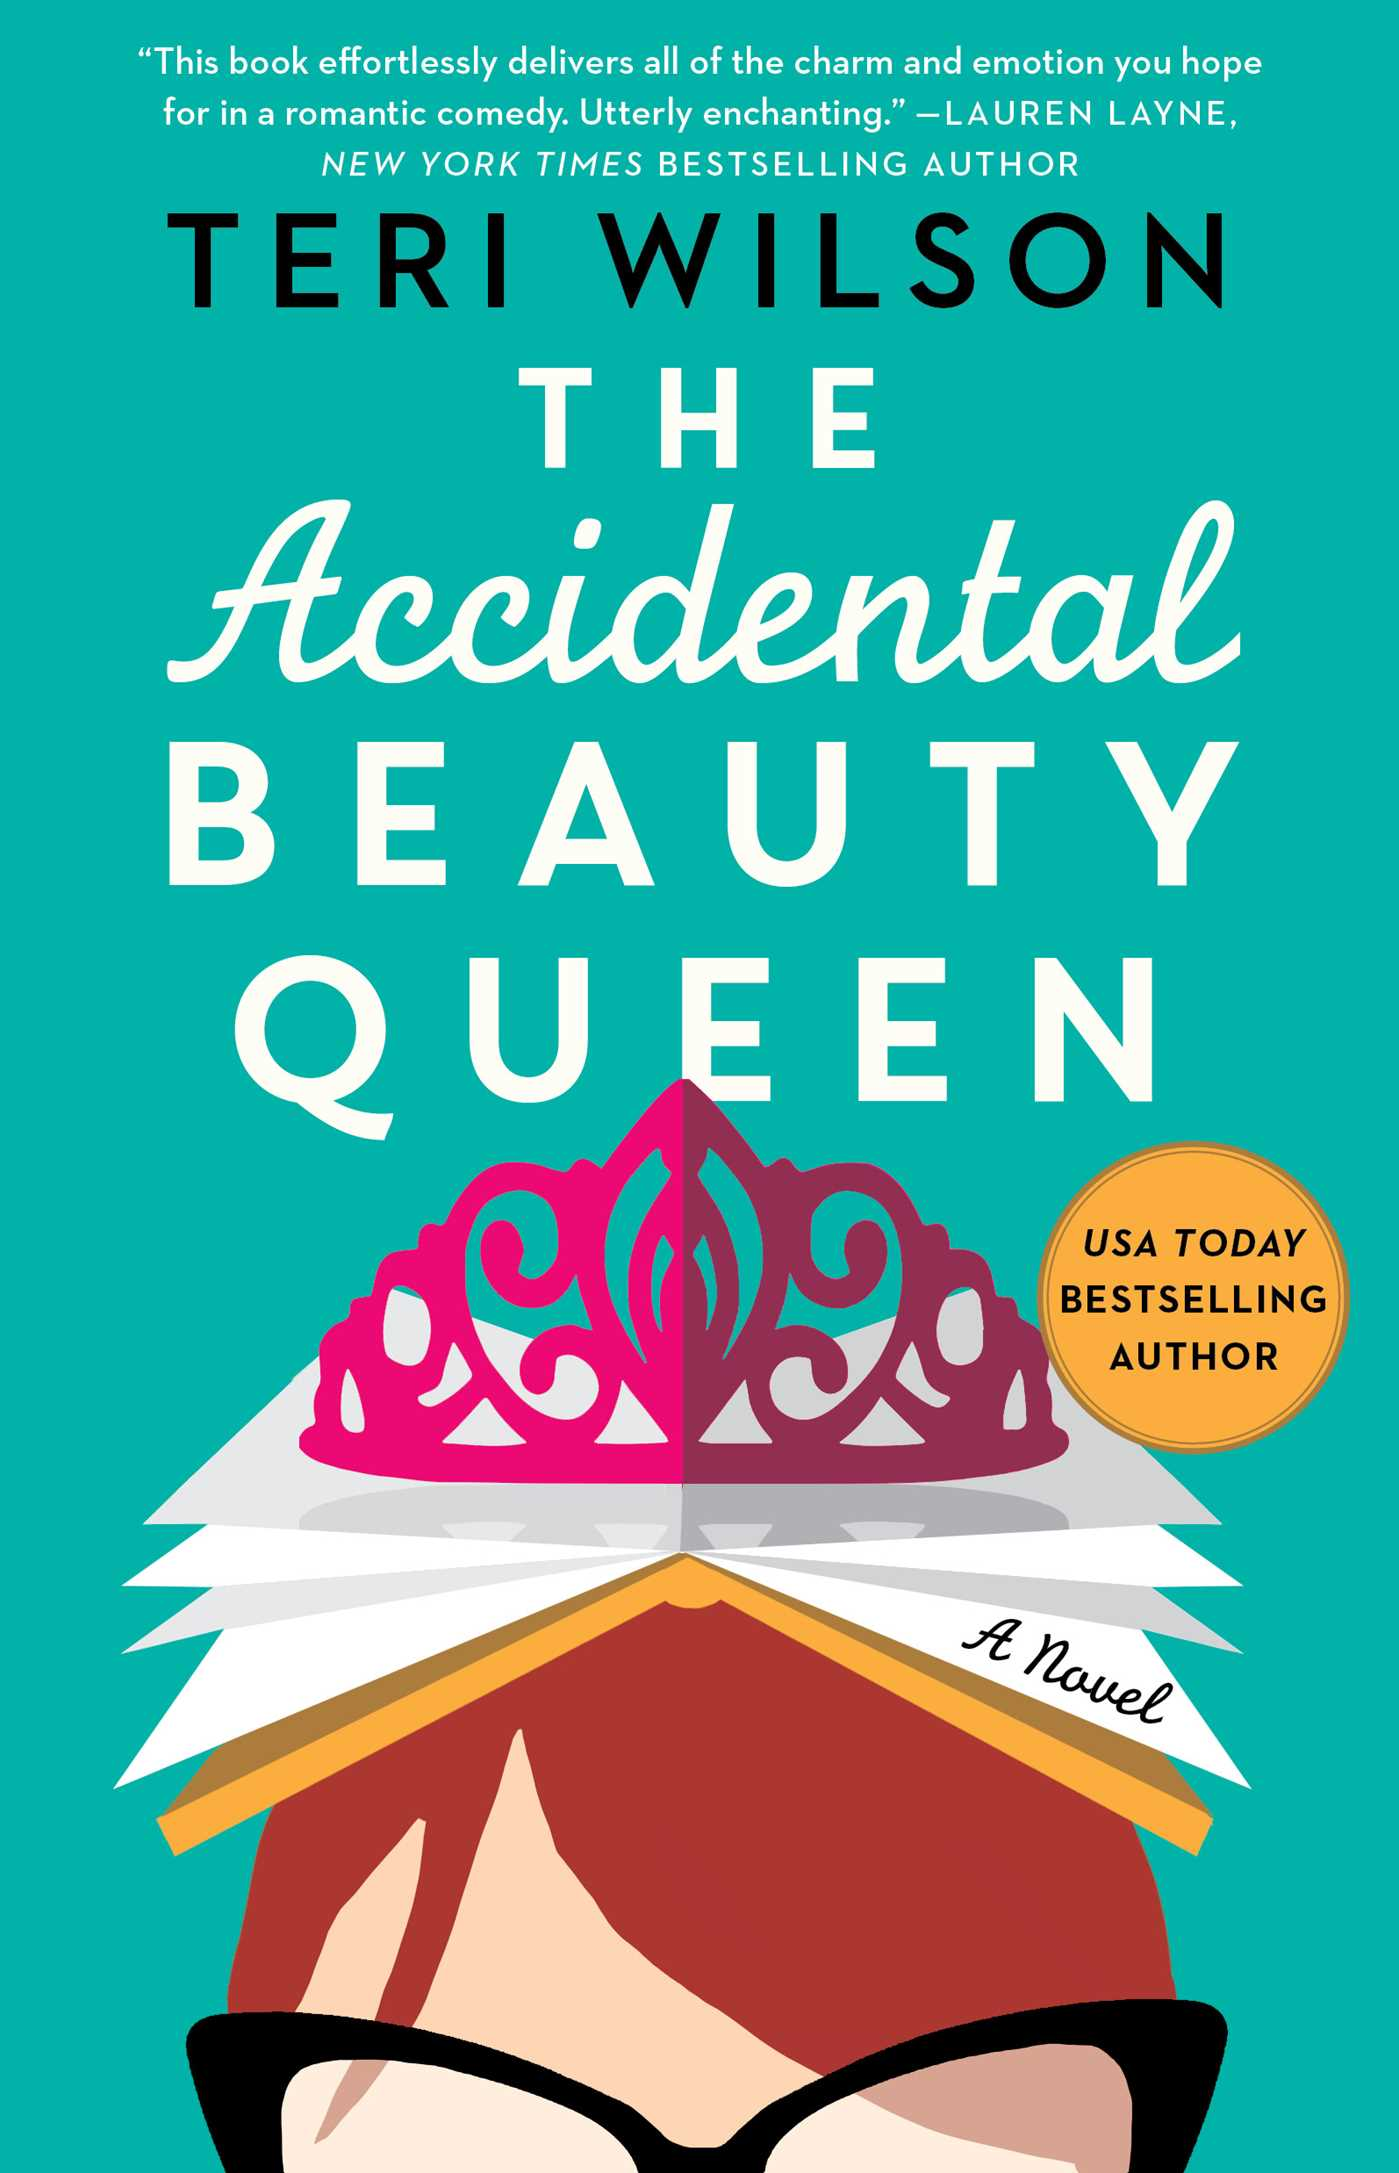 The accidental beauty queen 9781501197604 hr